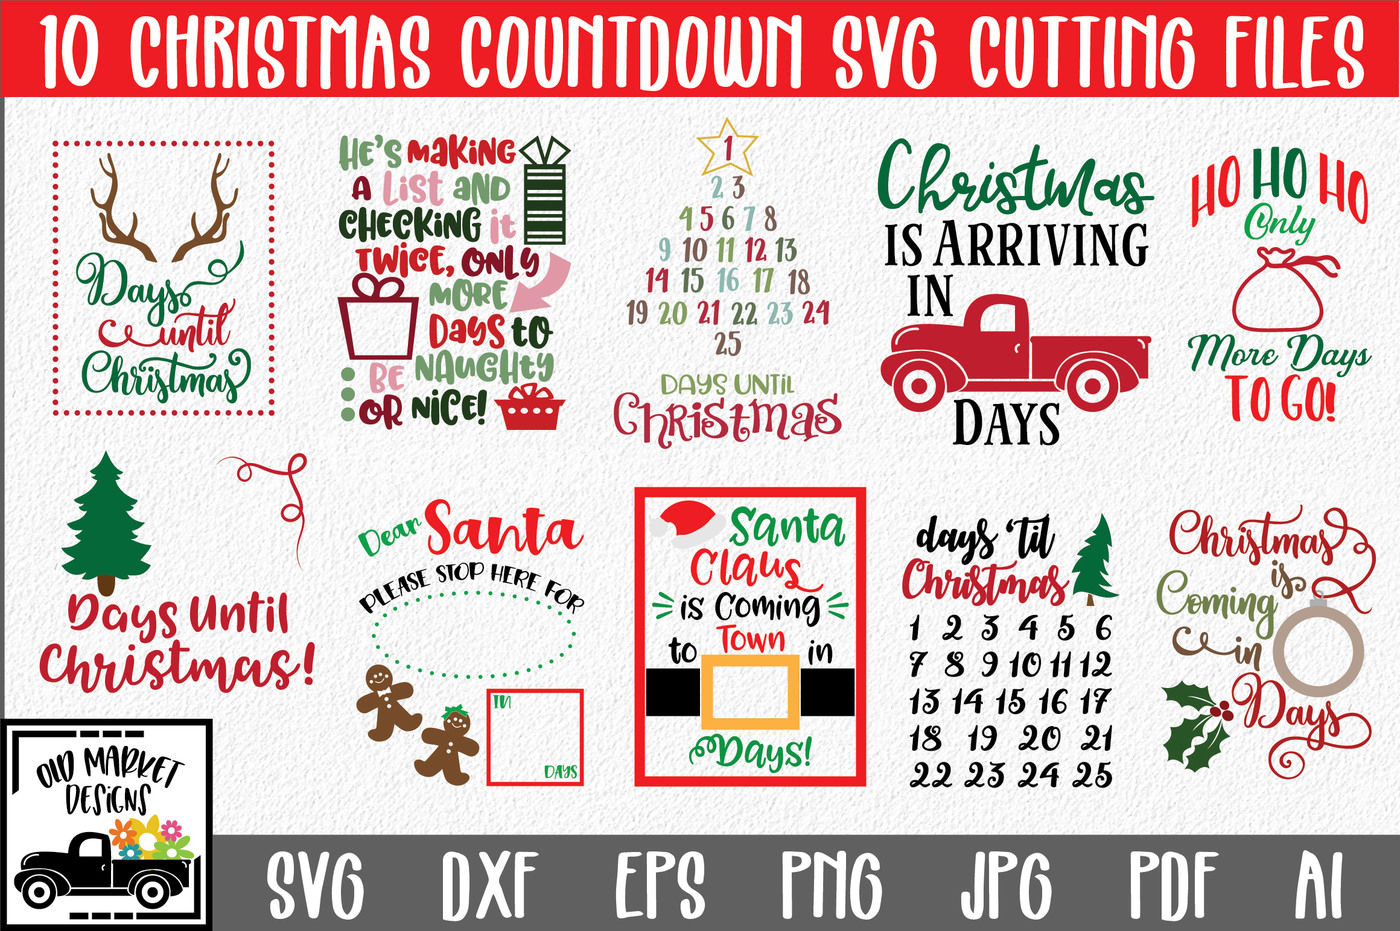 Christmas Svg Bundle With 10 Christmas Countdown Cut Files By